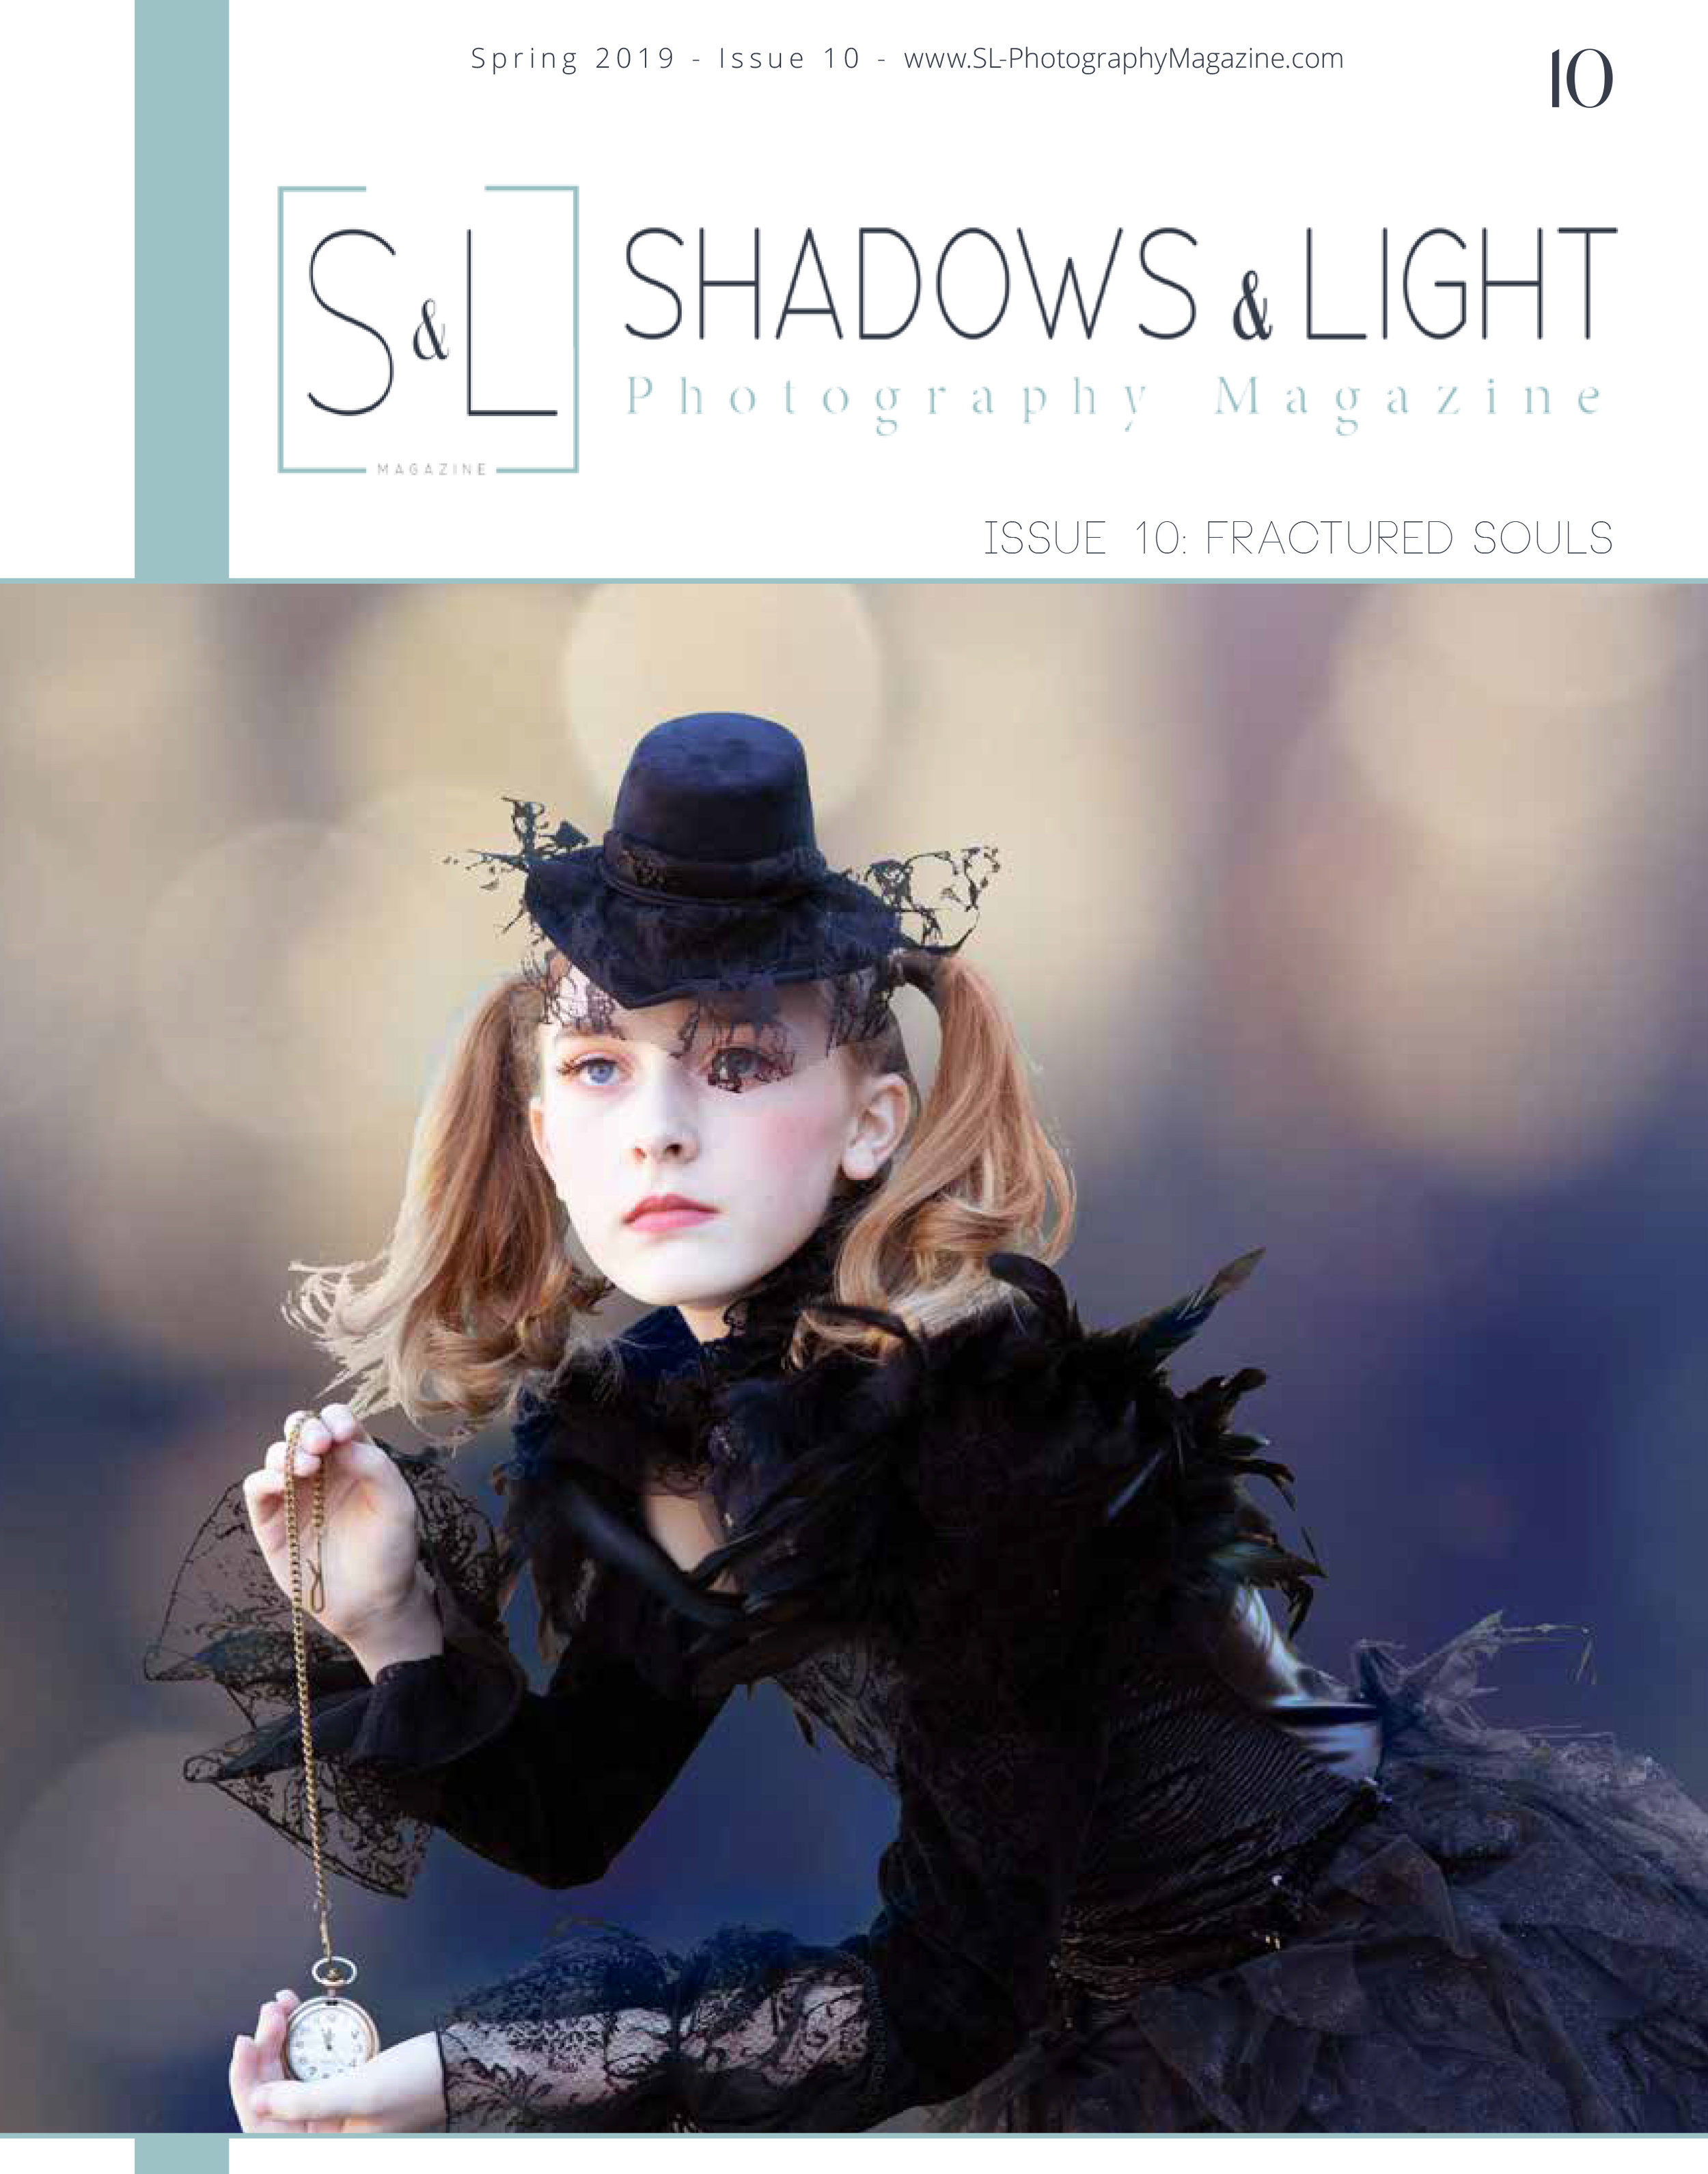 SL - Photography Magazine Issue 10